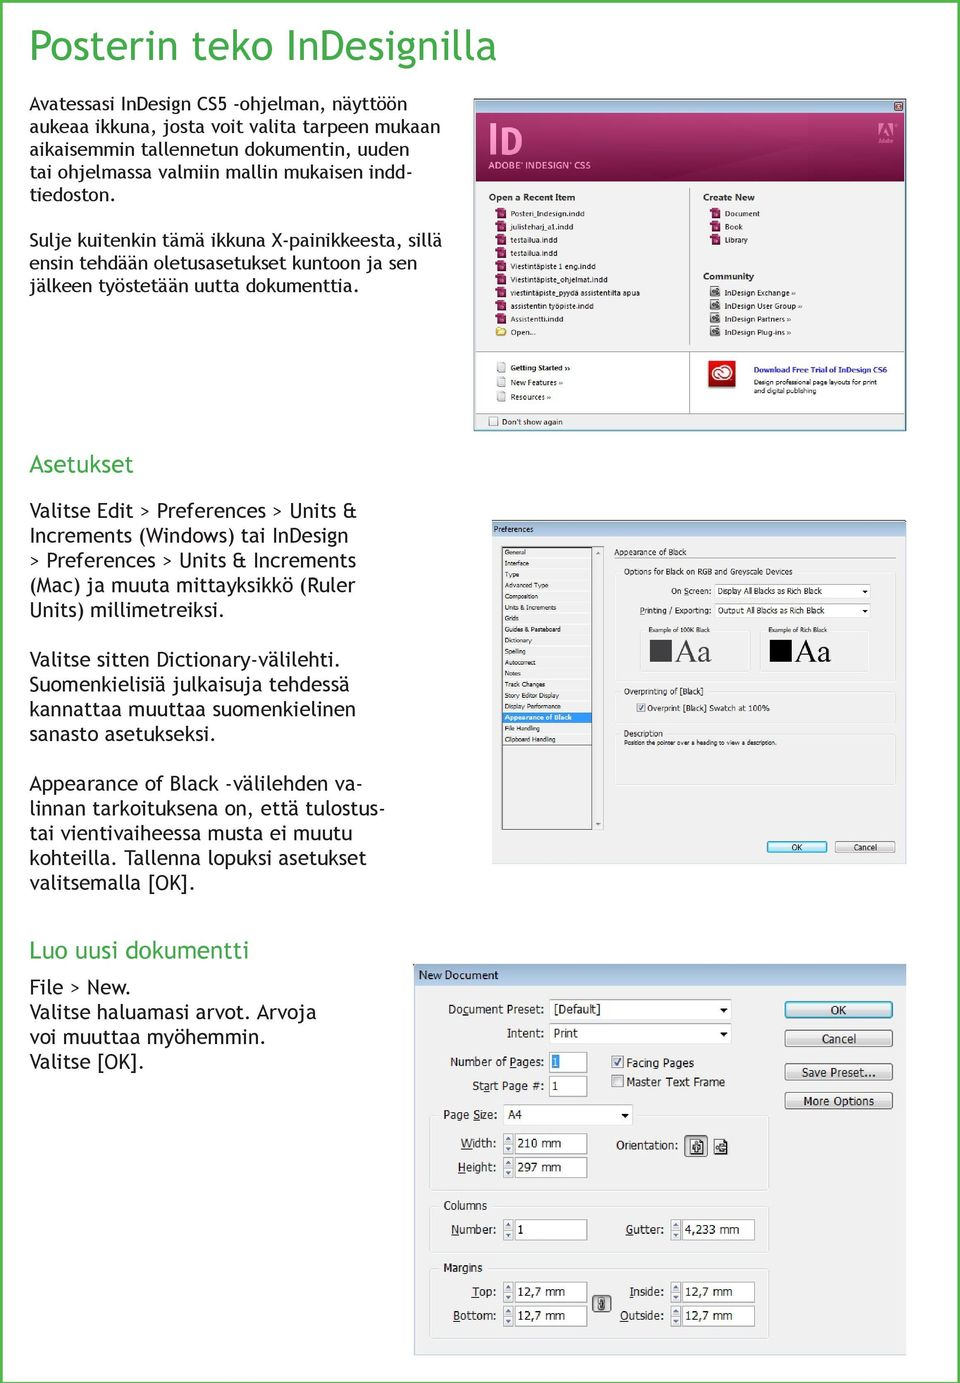 Asetukset Valitse Edit > Preferences > Units & Increments (Windows) tai InDesign > Preferences > Units & Increments (Mac) ja muuta mittayksikkö (Ruler Units) millimetreiksi.